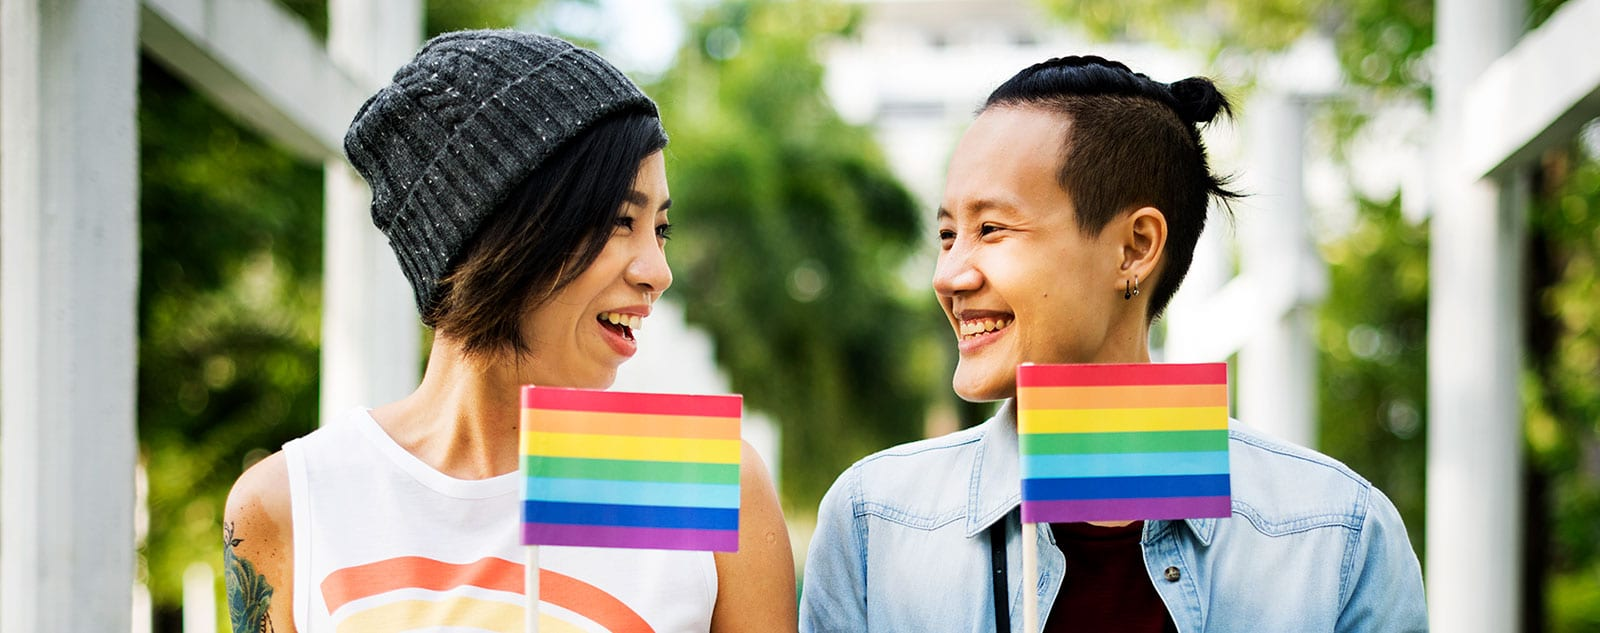 two women holding pride flags